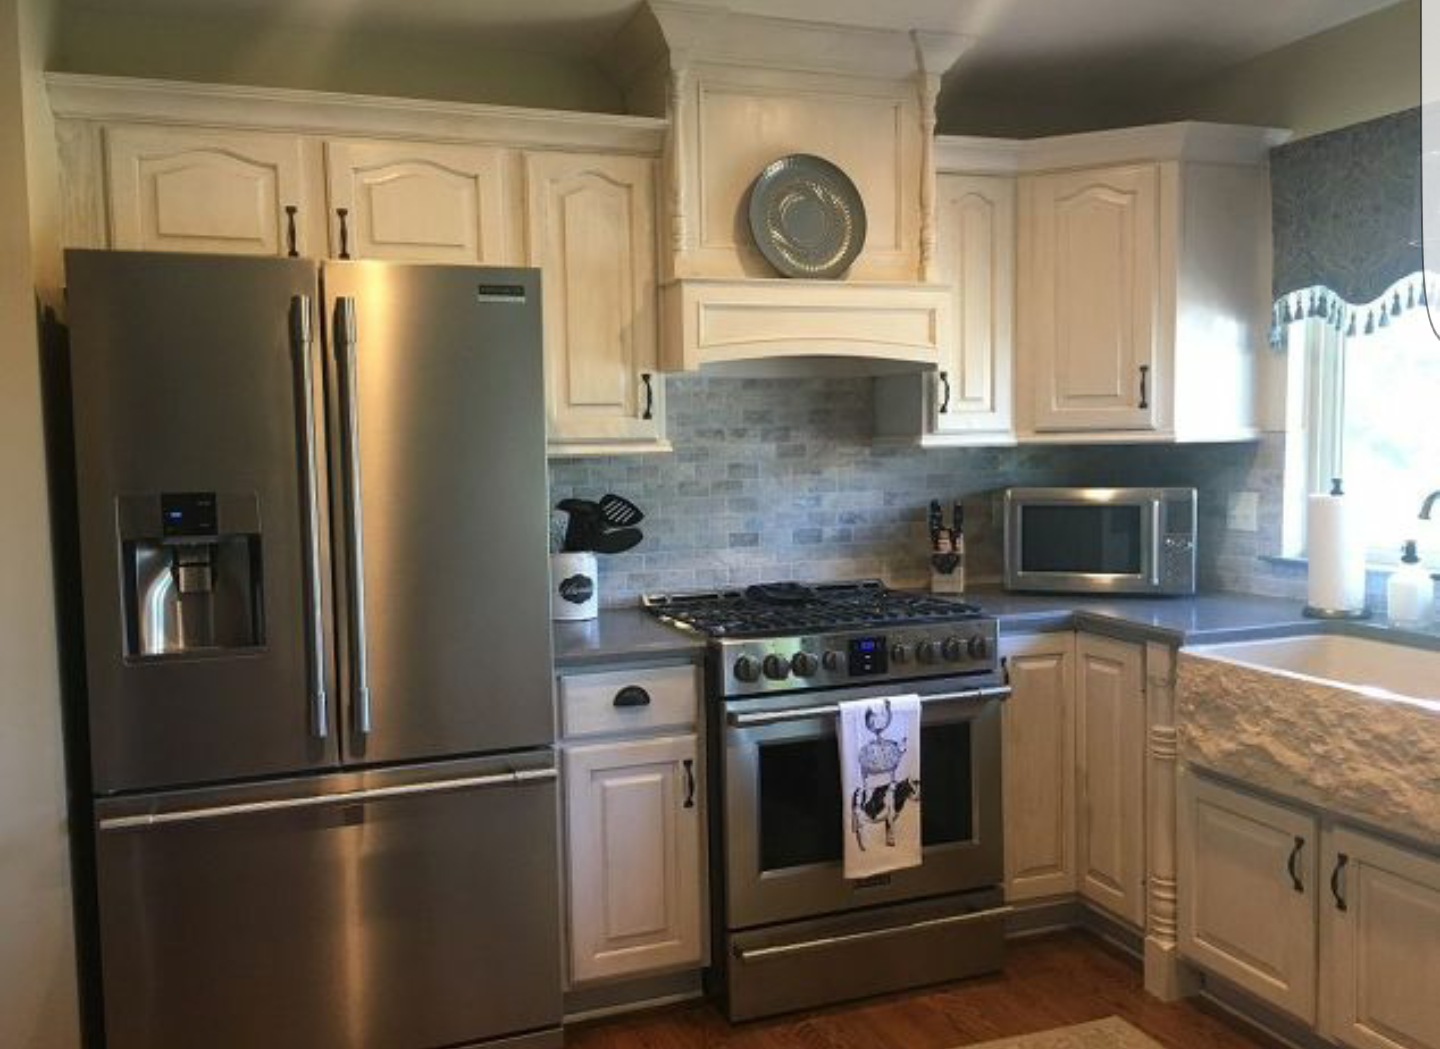 Cabinet Refinishing In Boulder Co Cabinet Refinishing And Kitchen Cabinet Painting Boulder Co